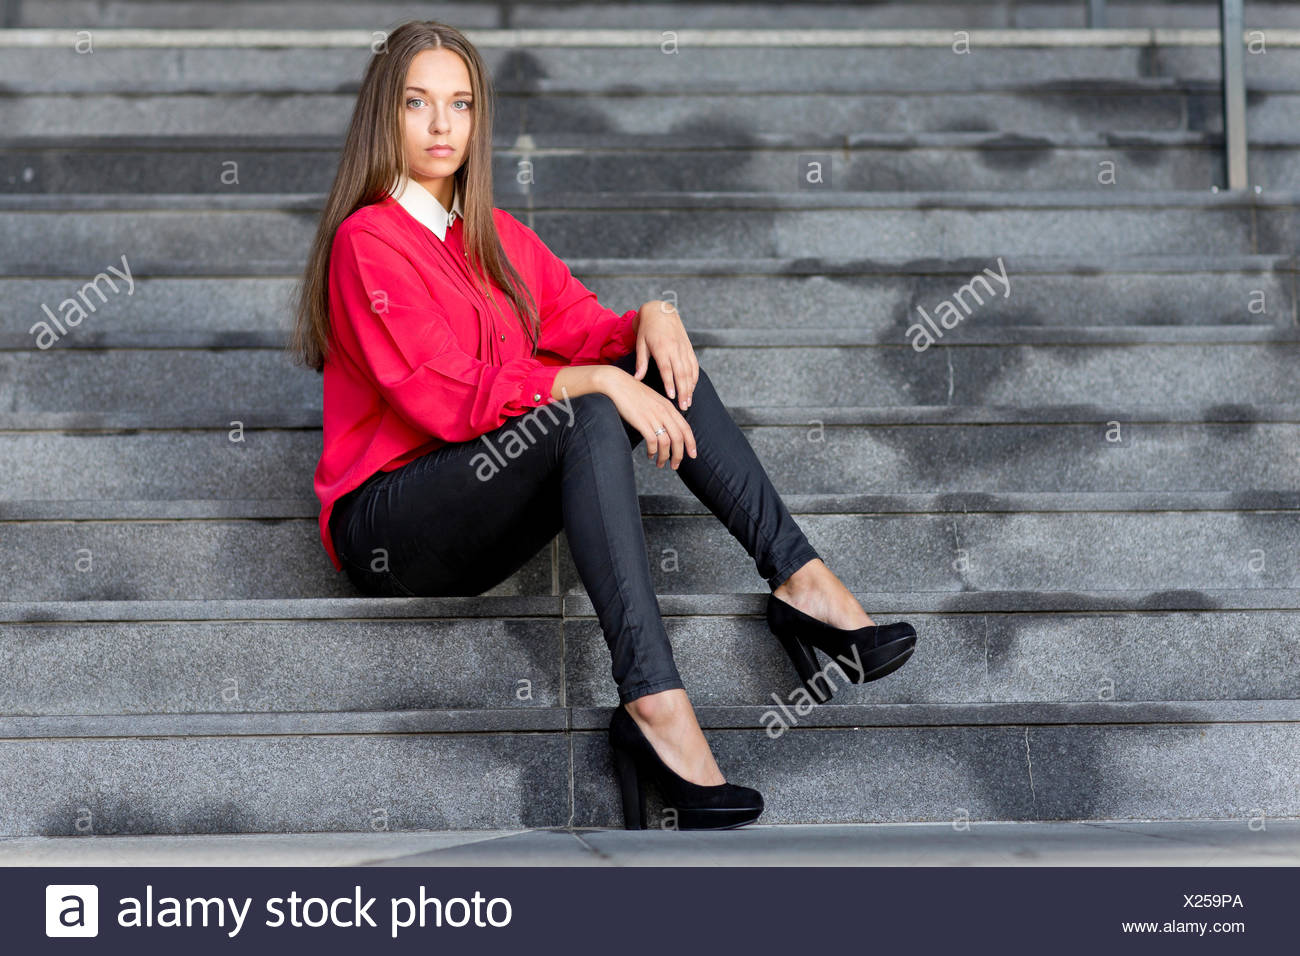 2f7365d43 Young woman wearing a red top, black jeans and high heels posing while  sitting on